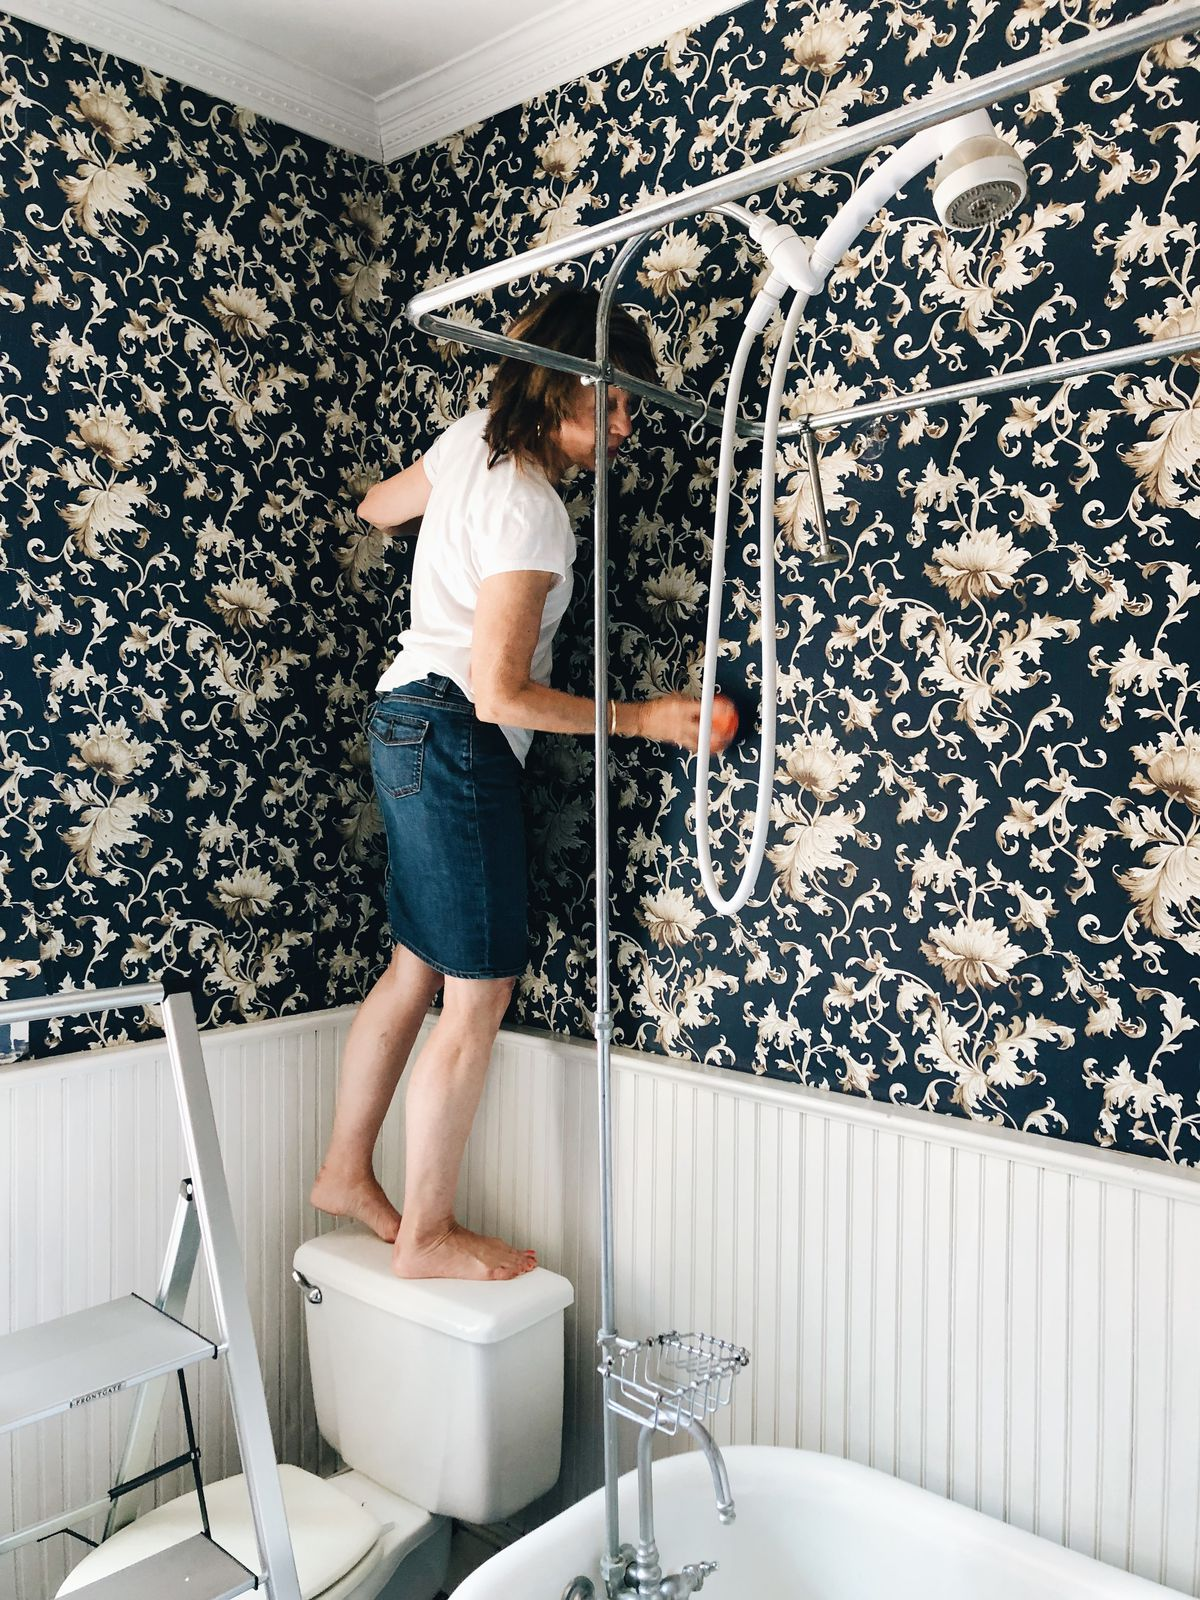 Kelsey Keith's mom removes dark patterned wallpaper from a bathroom wall.